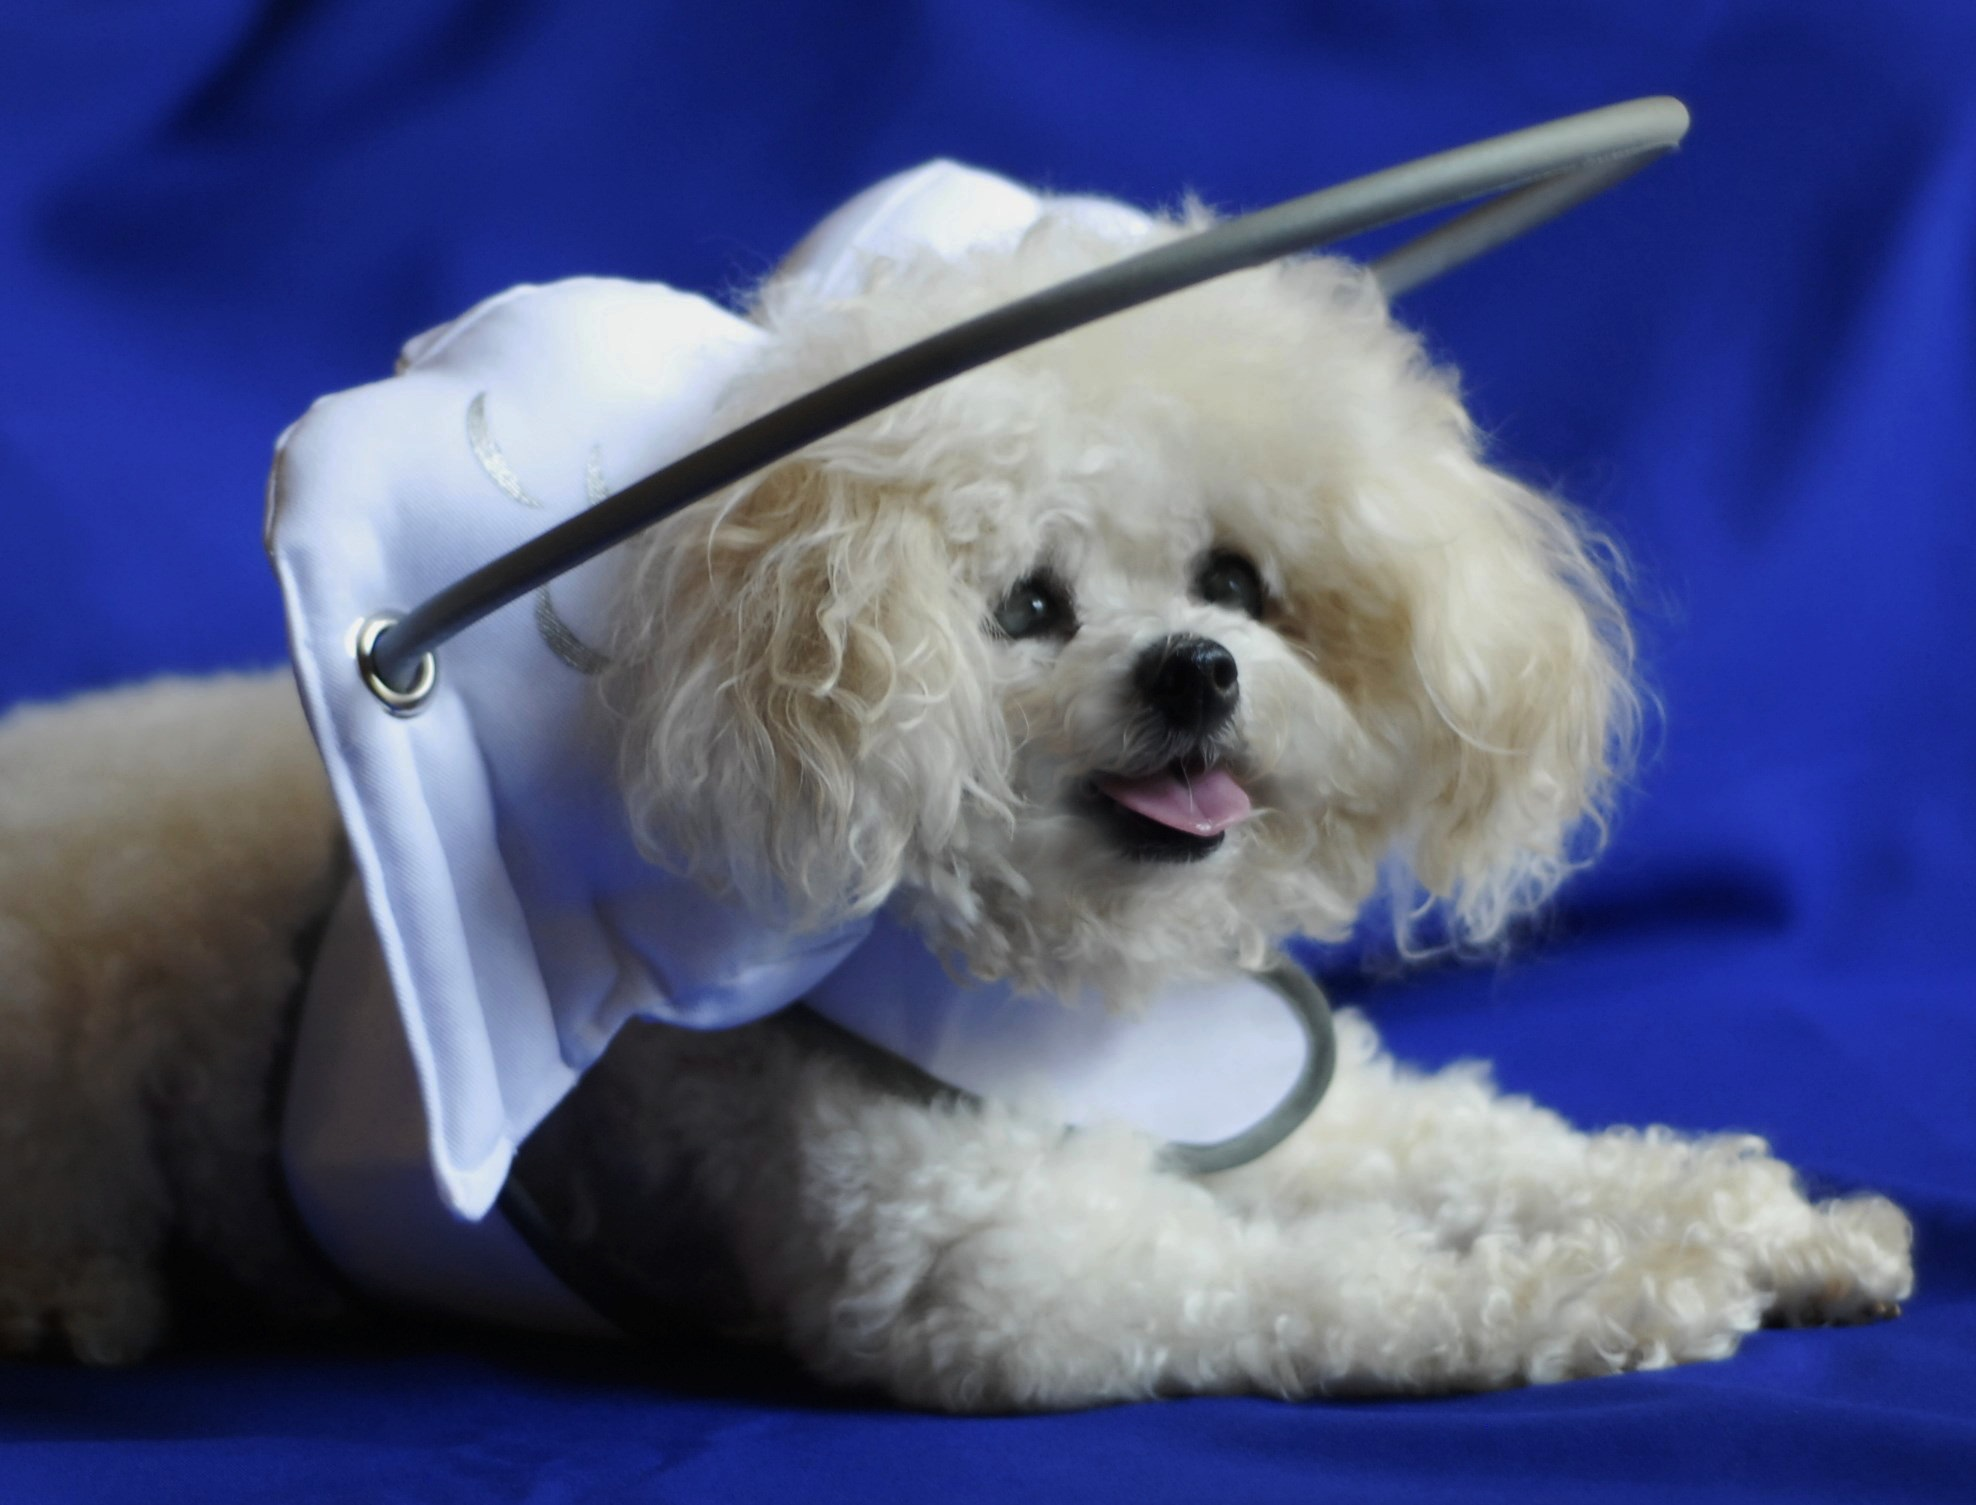 Muffin S Halo A Blind Dog Product Named Top 10 Pet